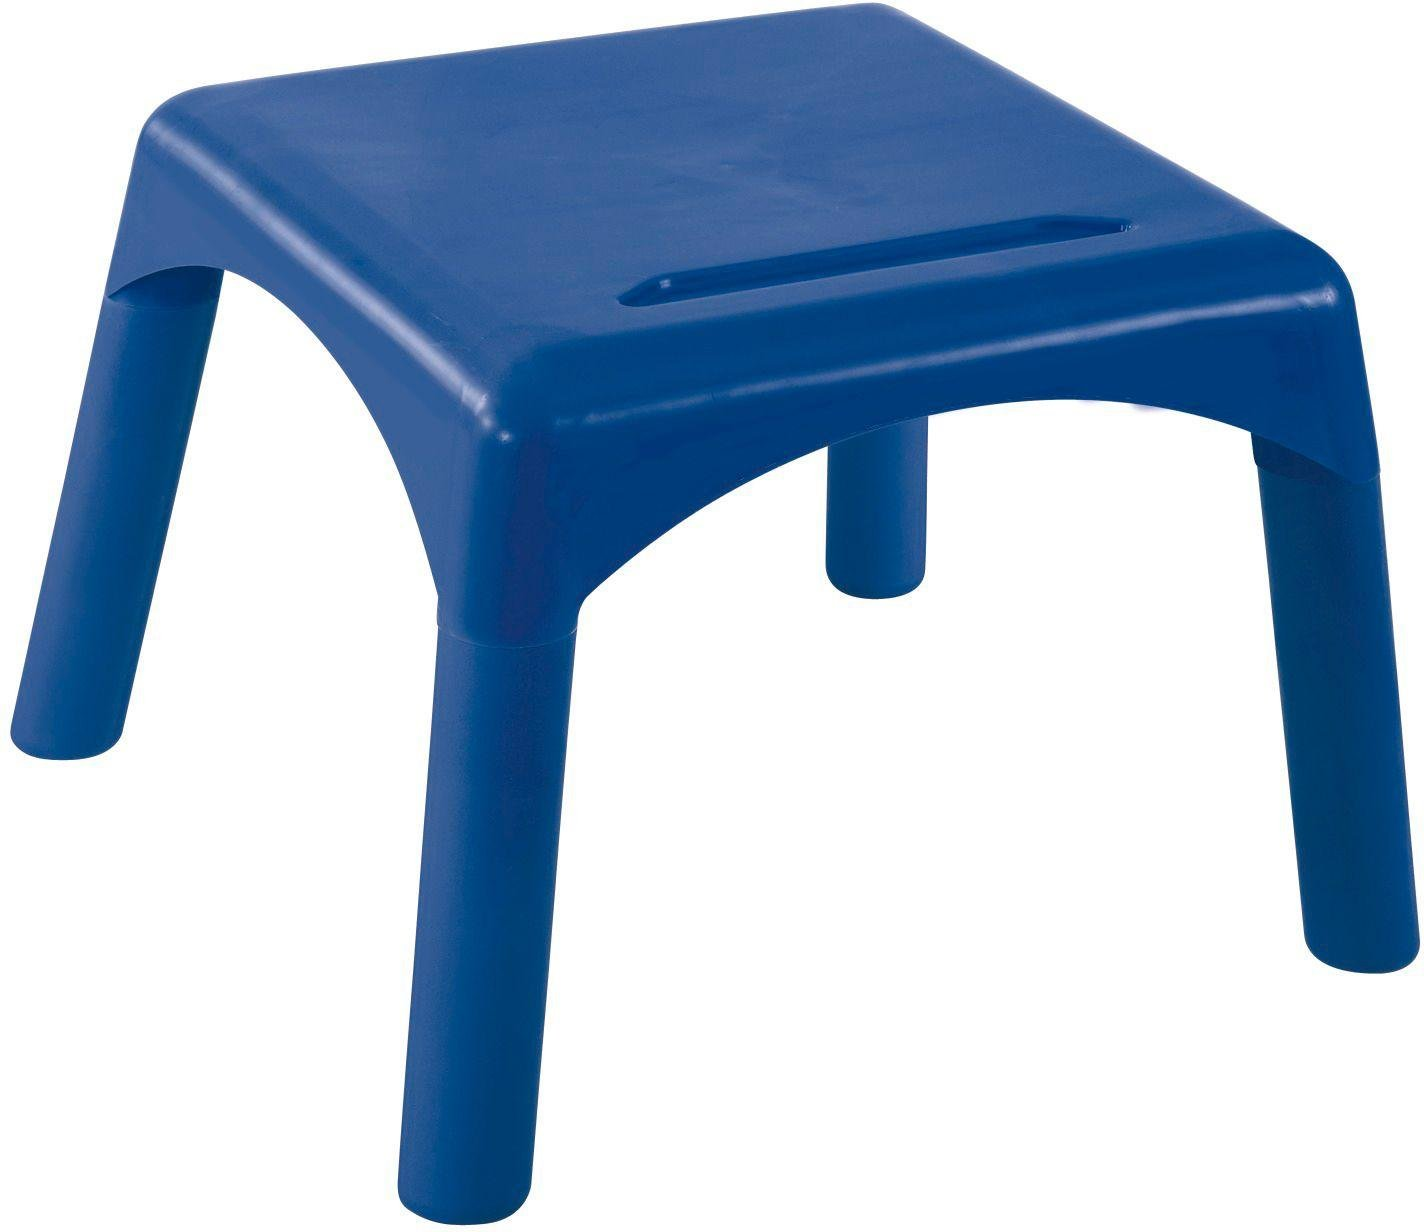 early-learning-centre-plastic-table-blue